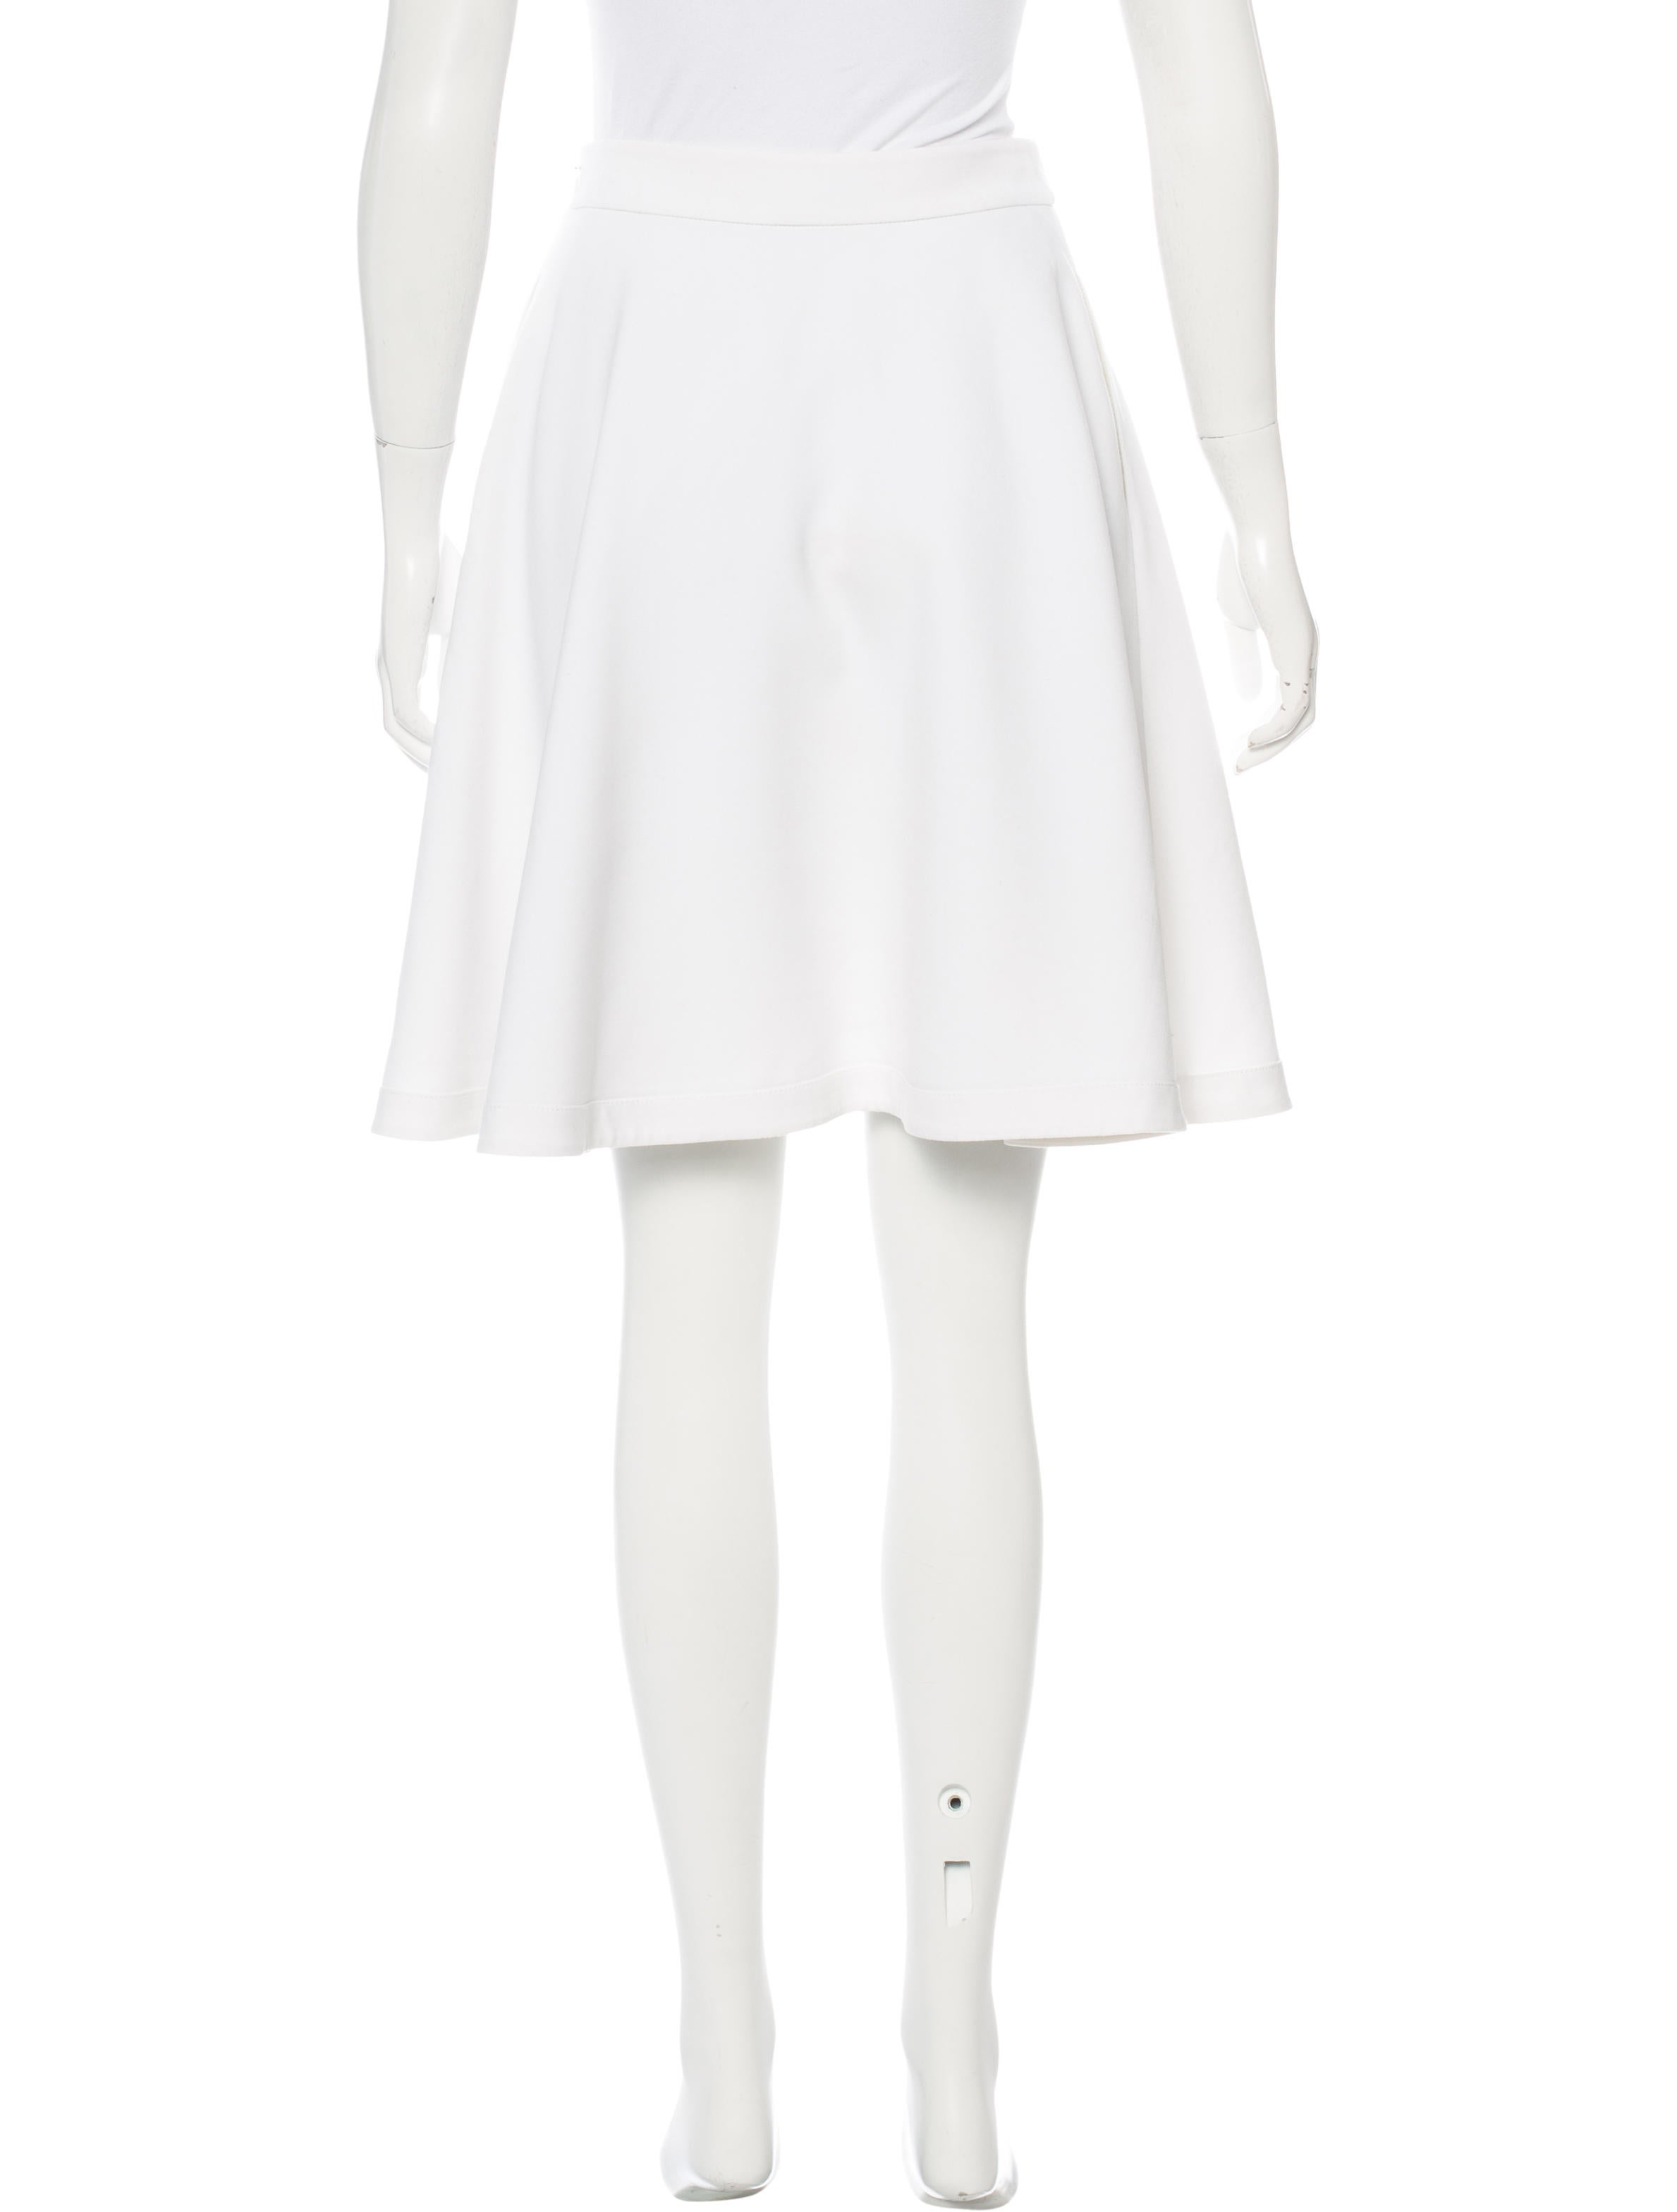 Diane von Furstenberg Knit Circle Skirt - Skirts - WDI90124 The RealReal